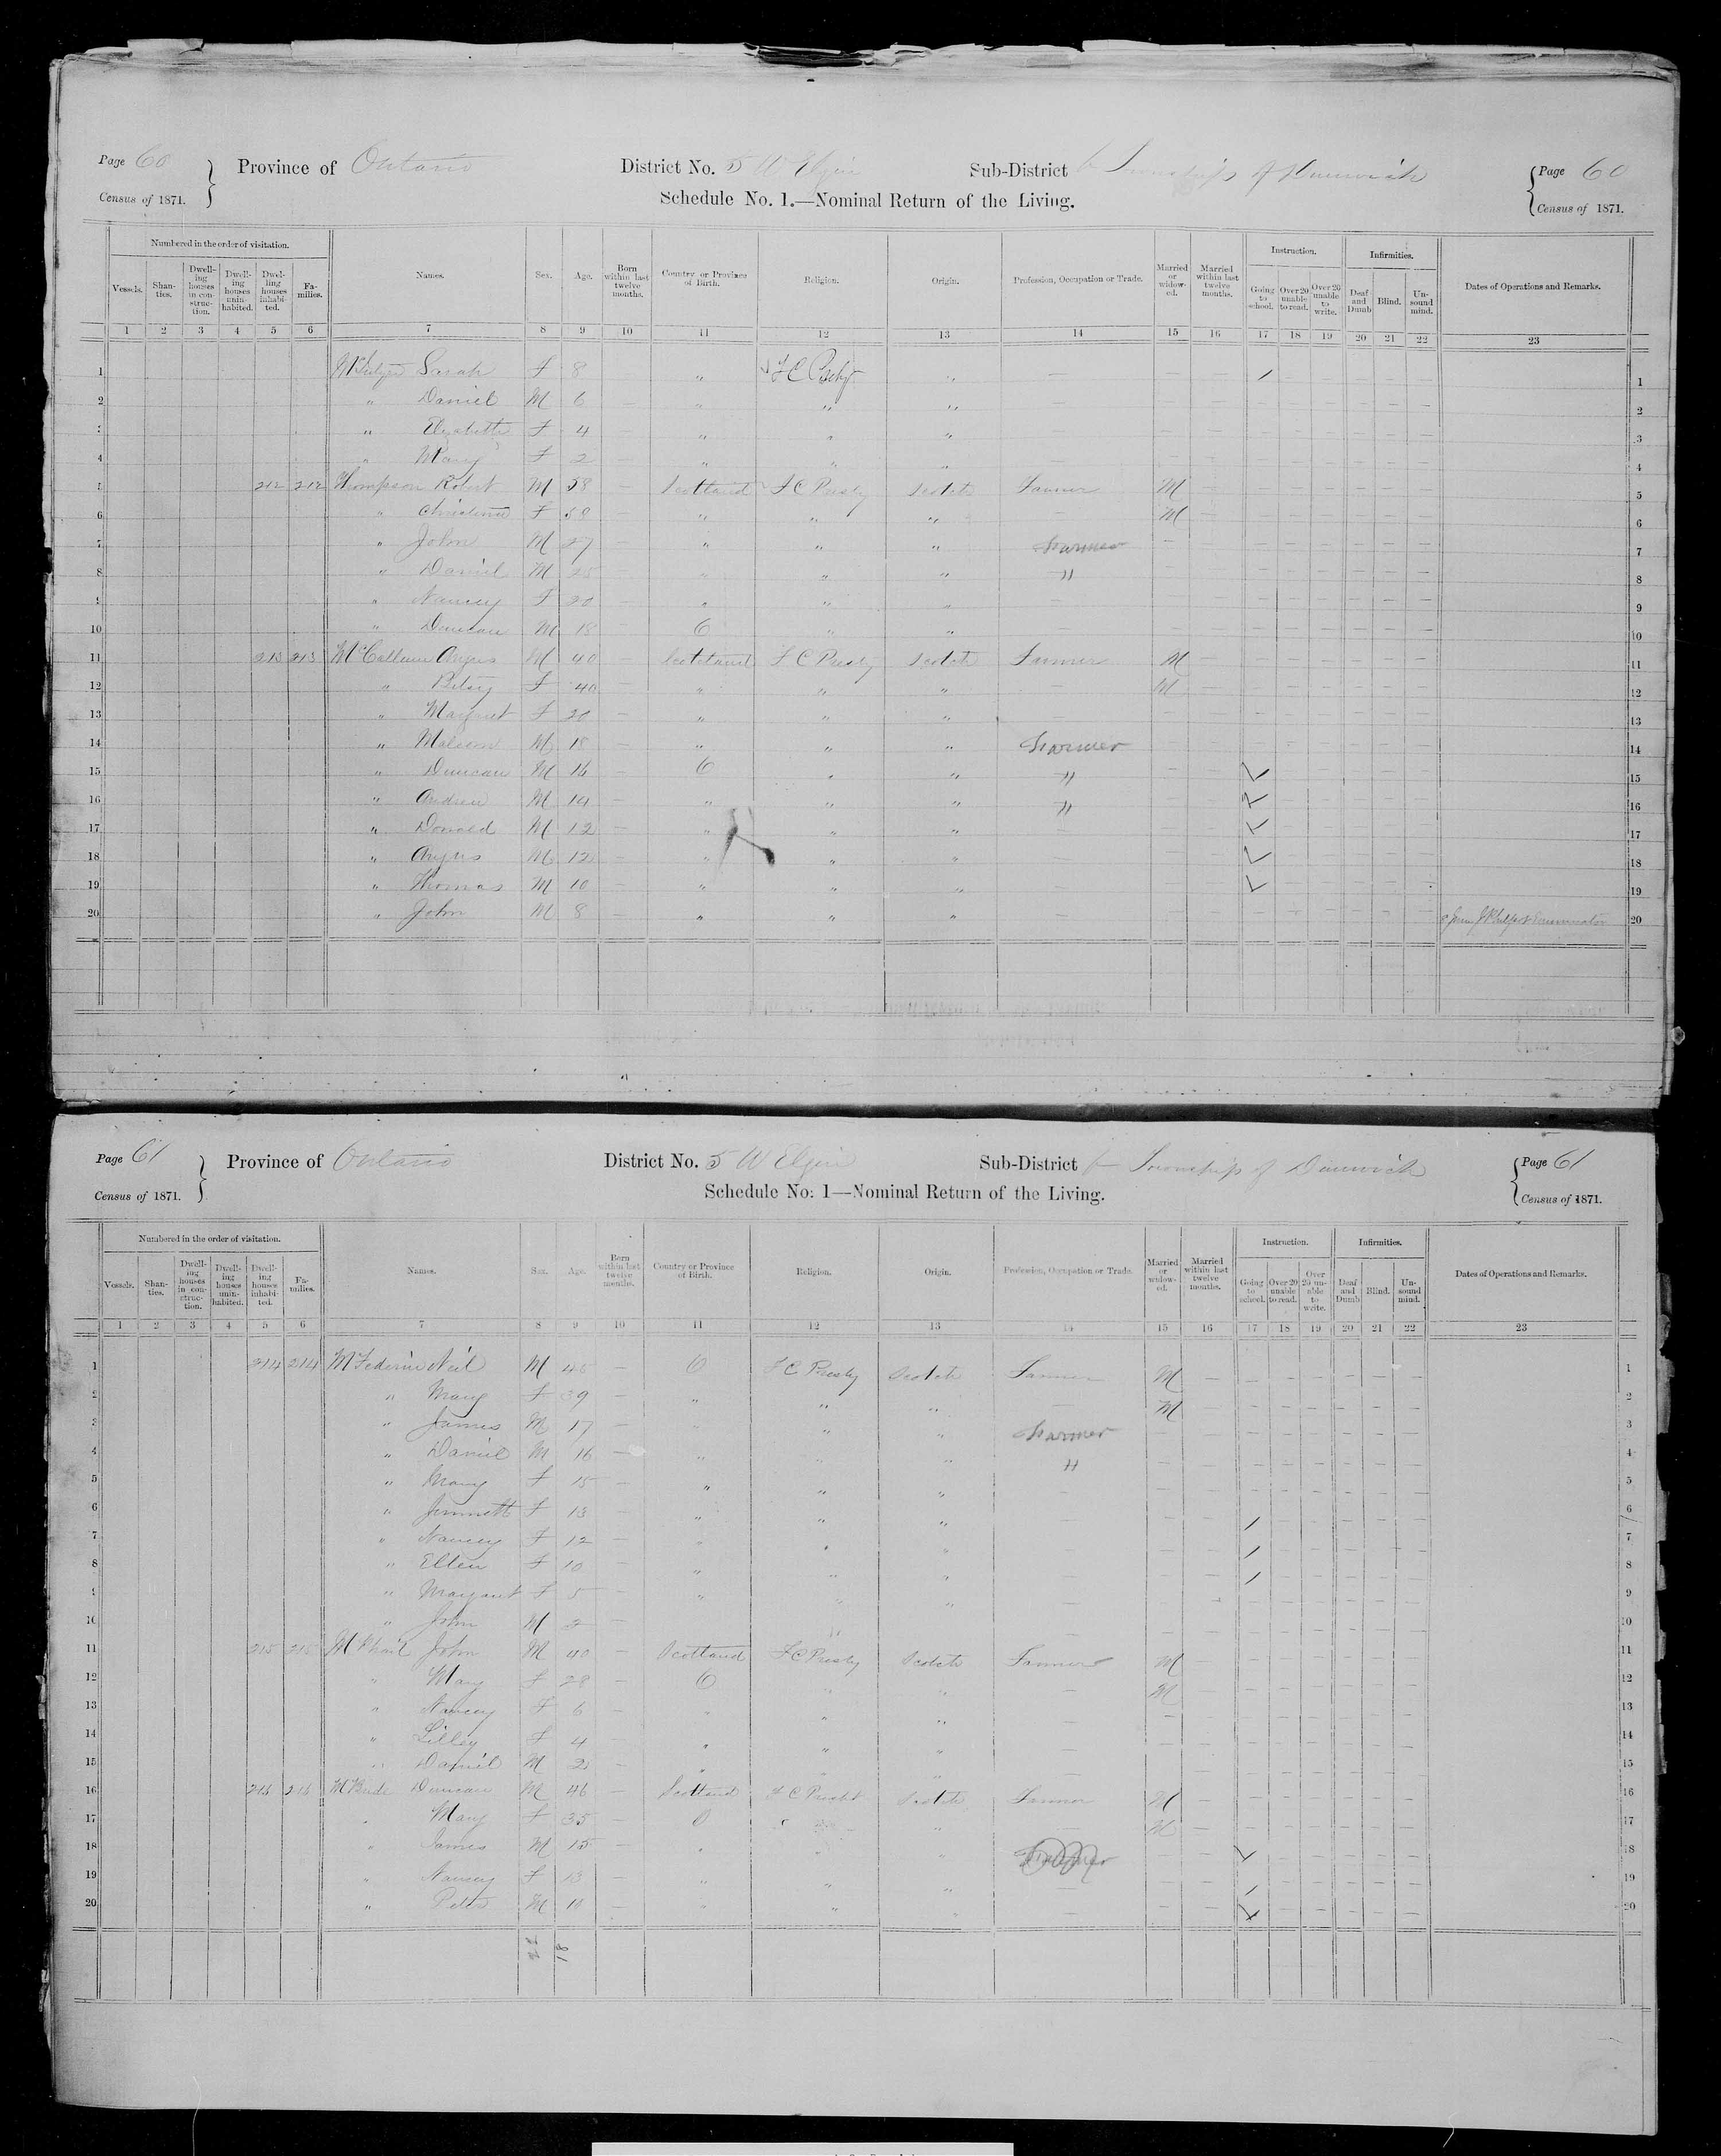 Title: Census of Canada, 1871 - Mikan Number: 142105 - Microform: c-9898